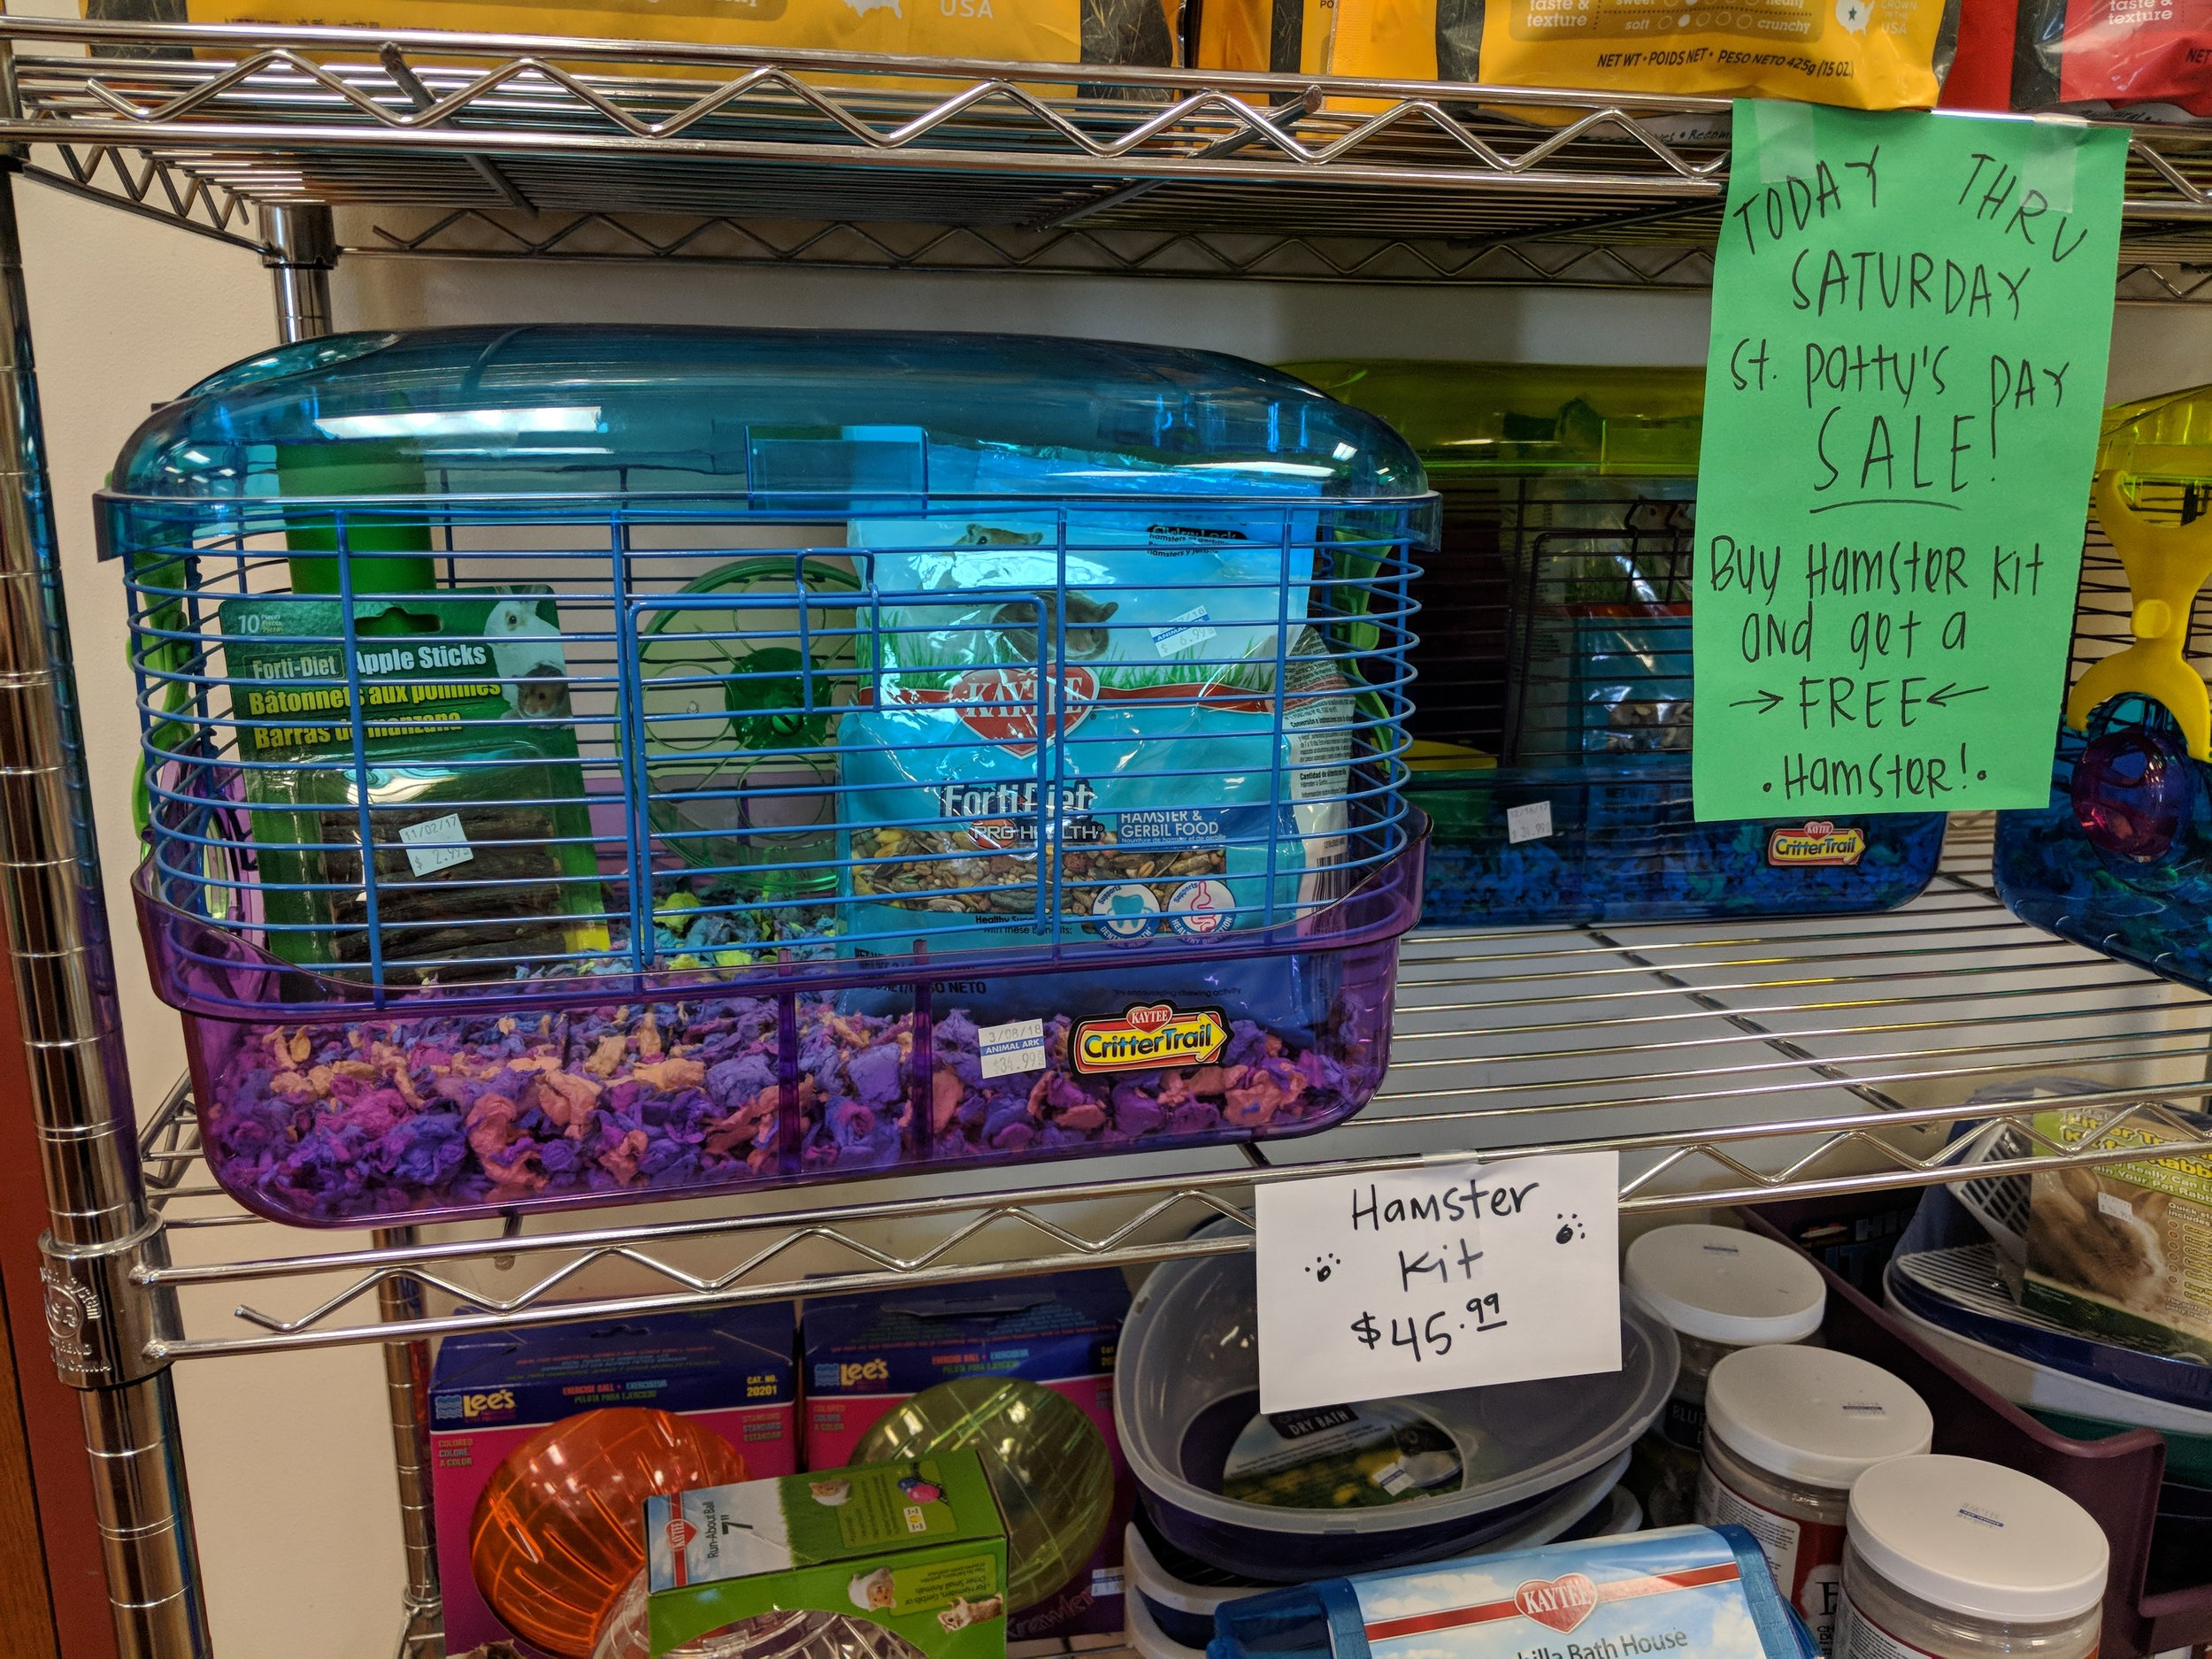 Receive a FREE hamster with the purchase of our hamster kit!    Sale ends Saturday.